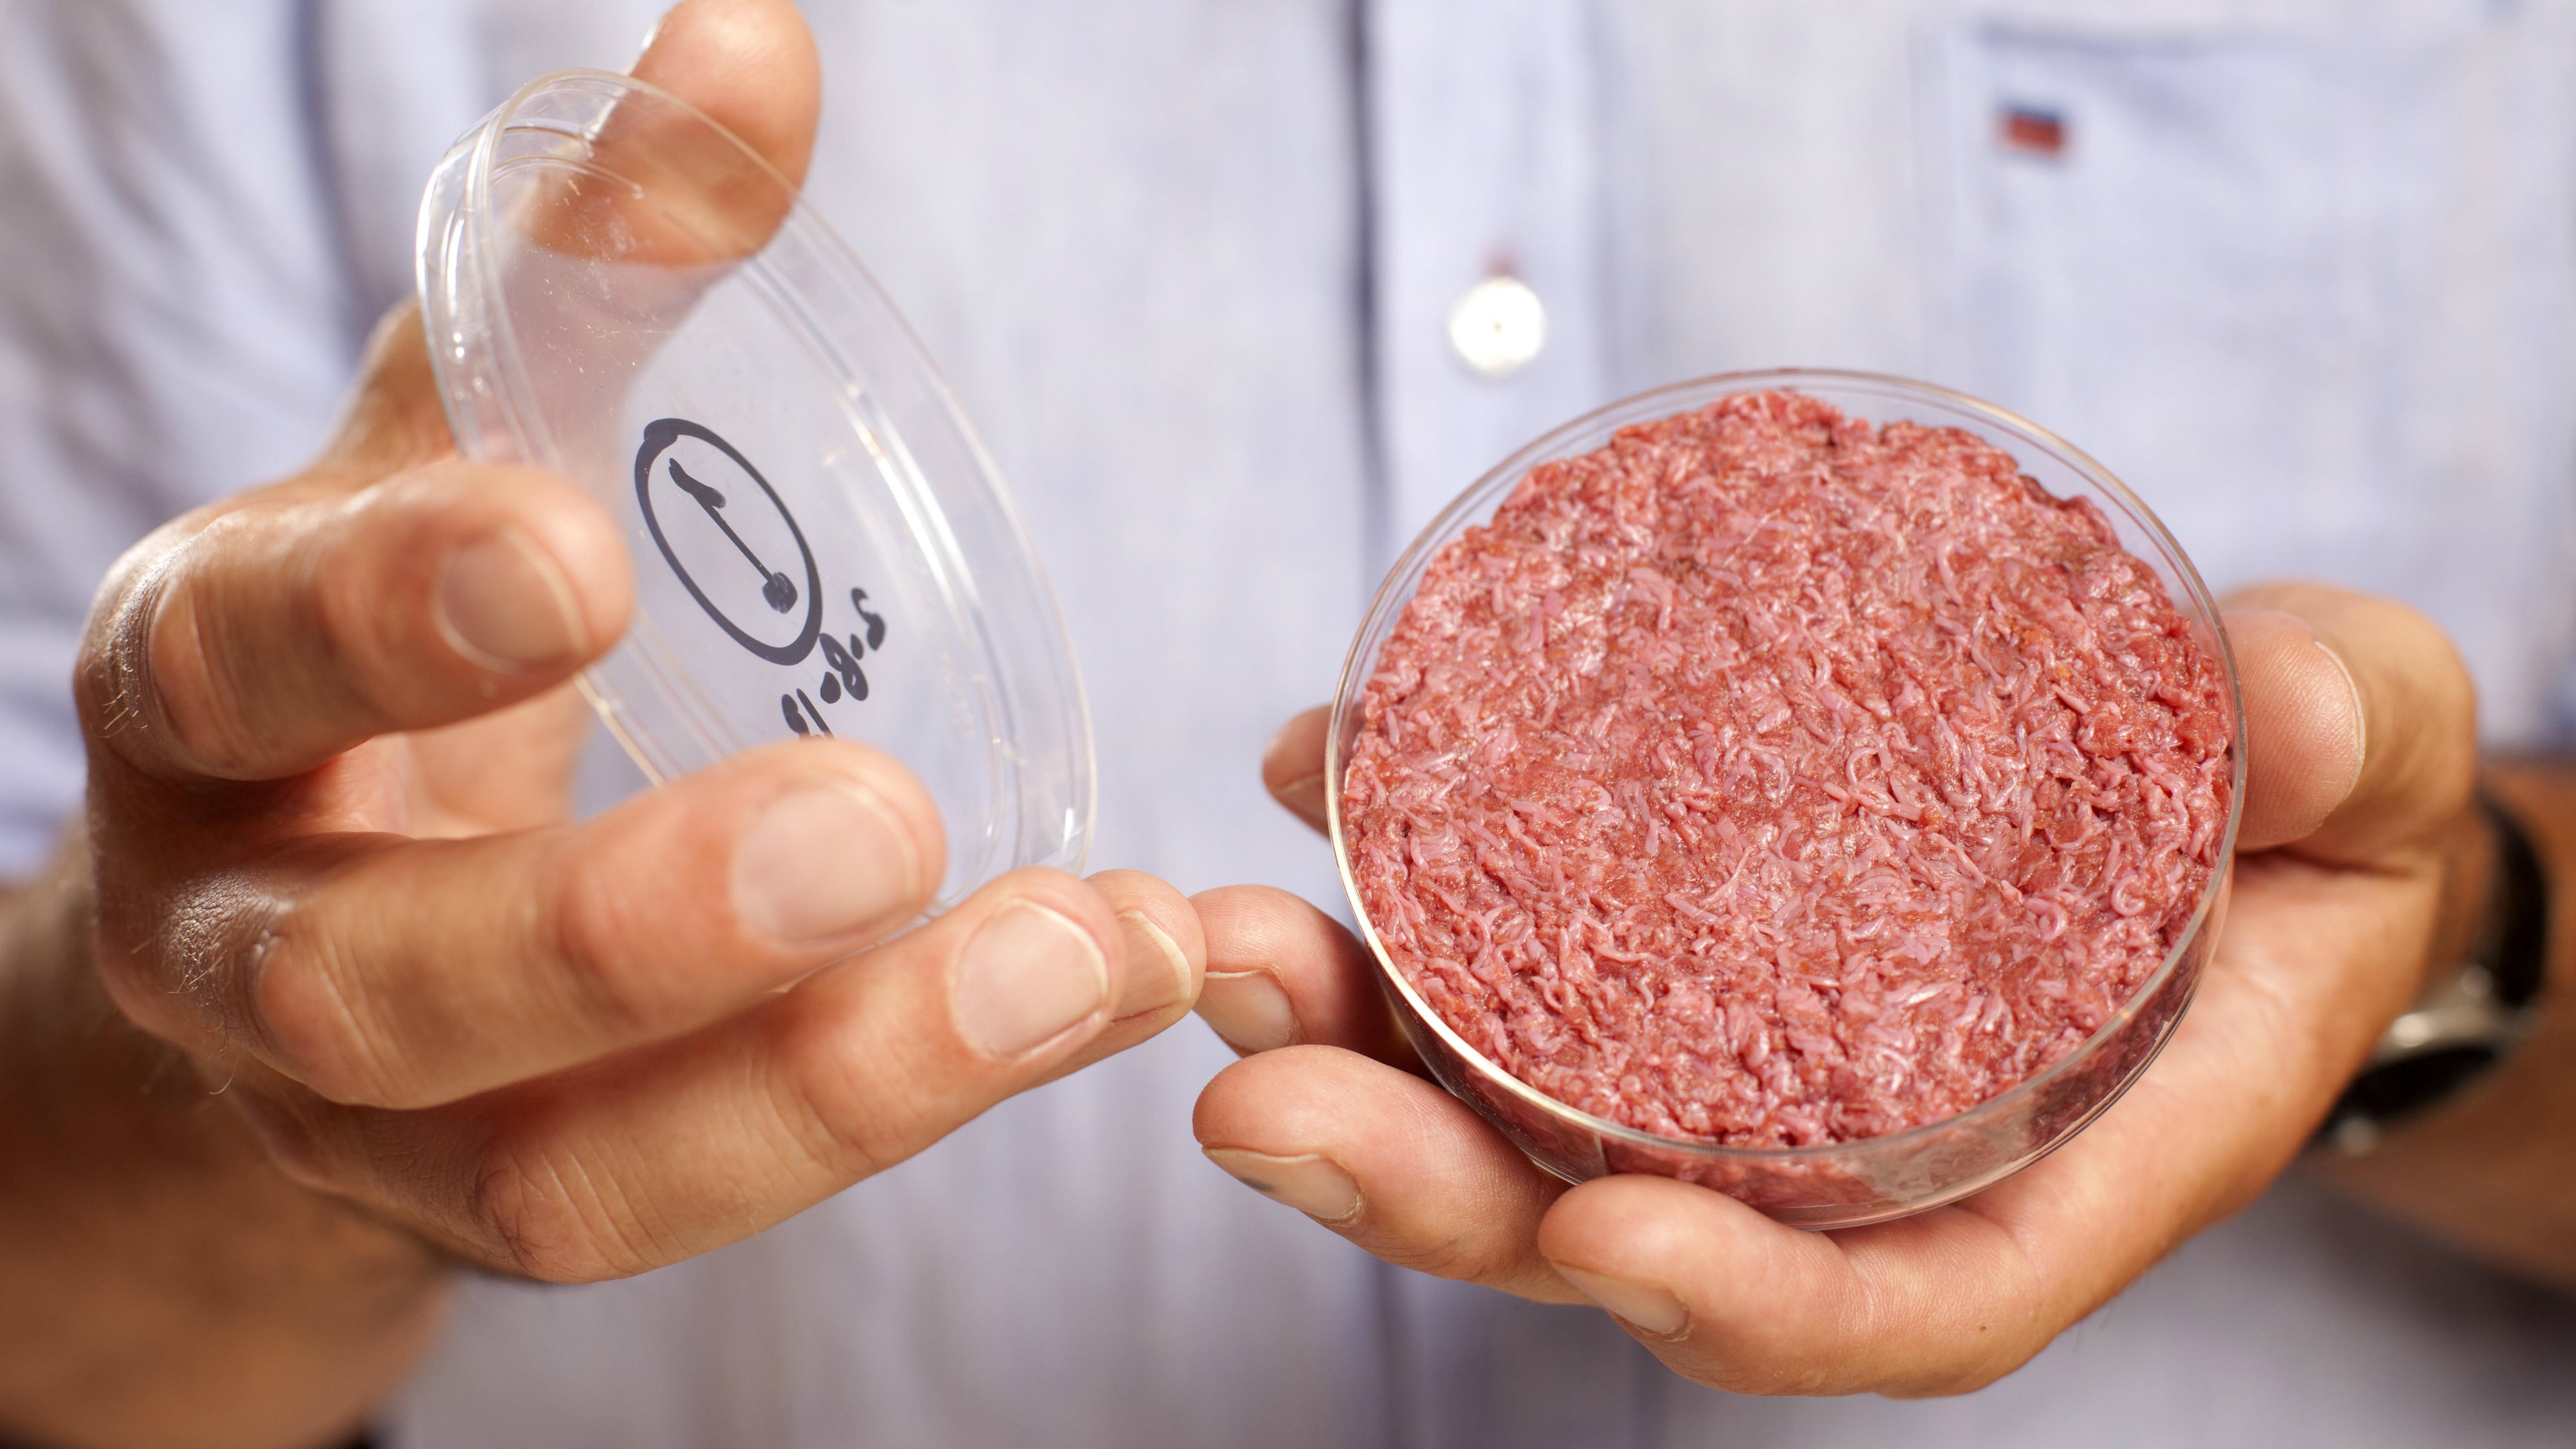 Clean meat just got a step closer to the market.